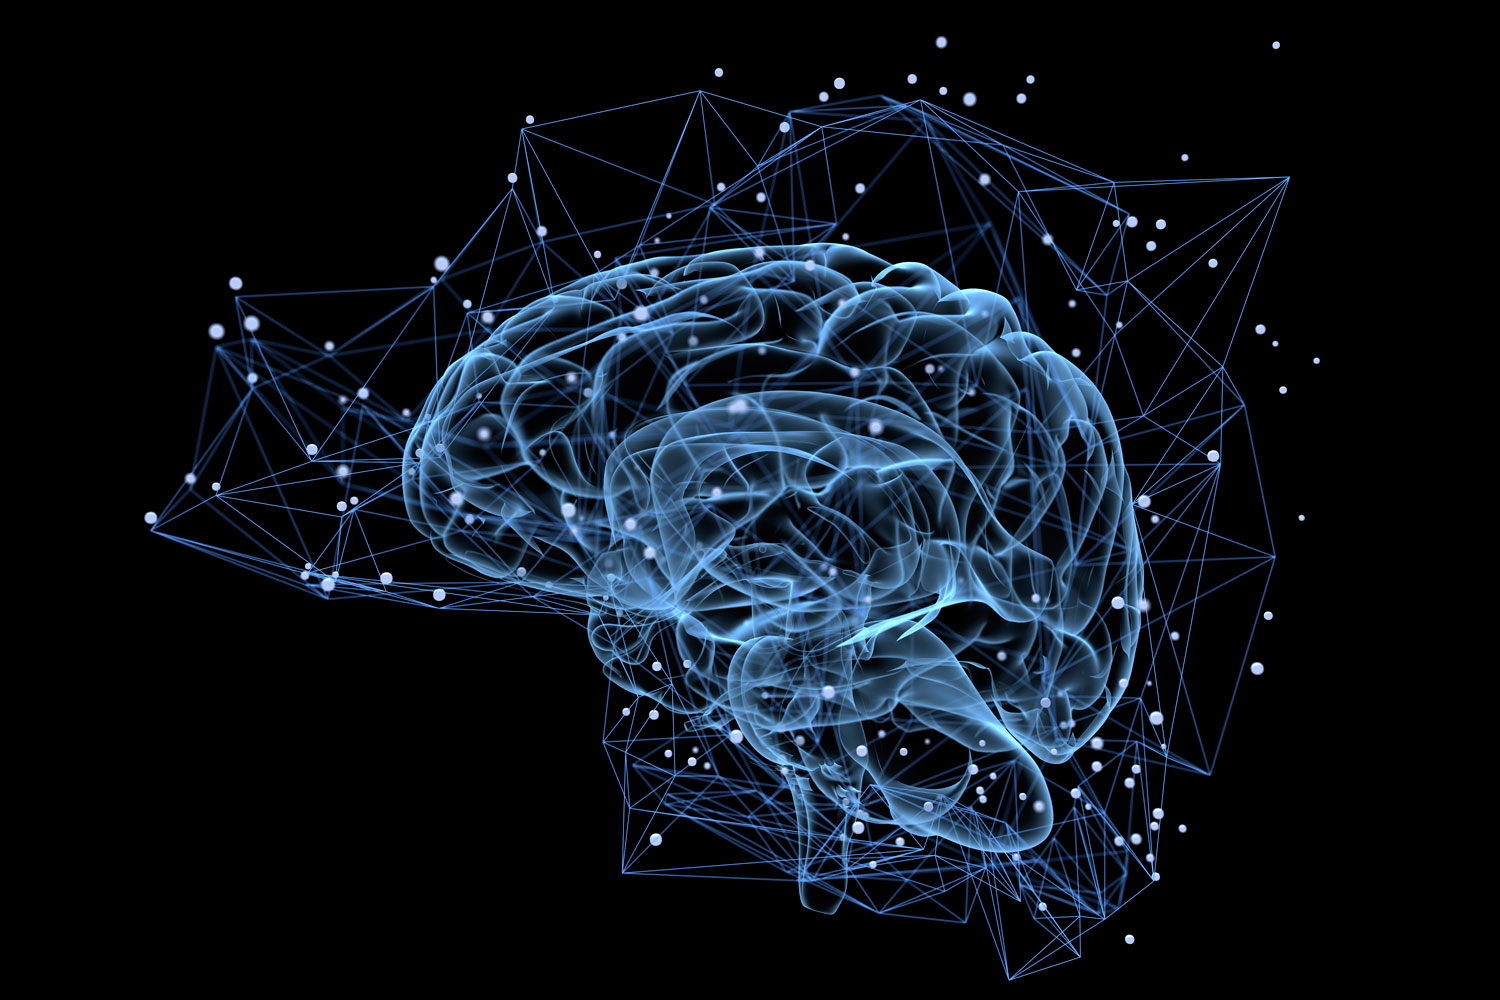 transparent brain cells with connecting nodes